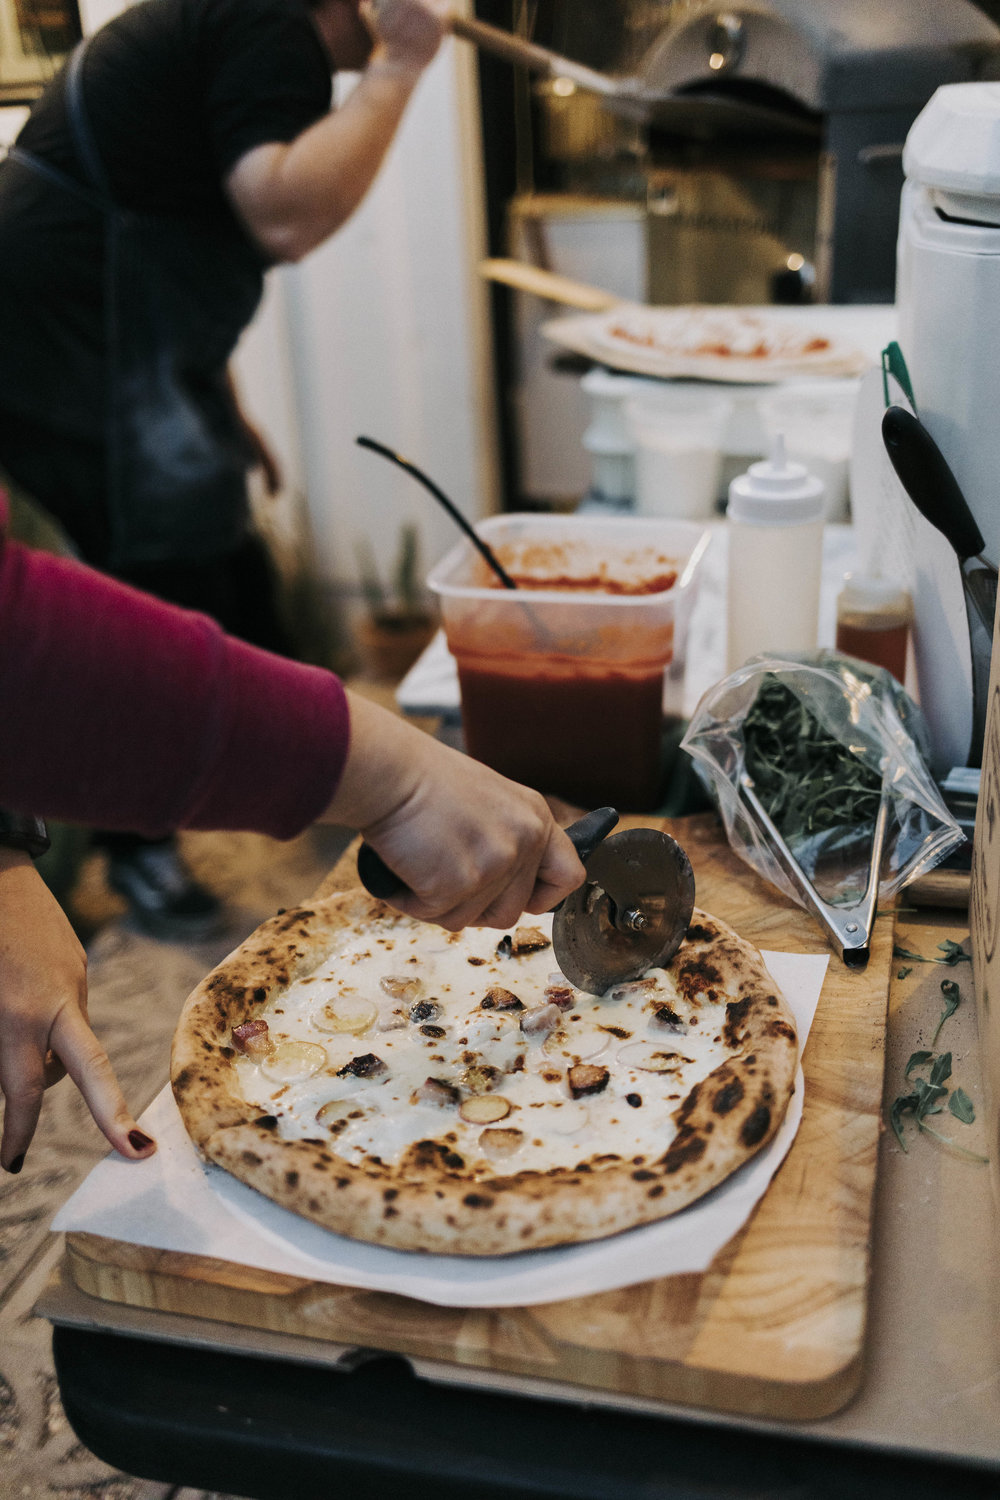 A Company Party with Pizza and Hand Spun Sugar Floss - Tremaine Ranch - AZ Arizona Wedding & Event, Vintage, Furniture, Tableware, & Specialty Rentals in Phoenix, Tucson, Flagstaff, Sedona, Tempe, Chandler, Mesa, Gilbert, Prescott, Payson 5103.jpg